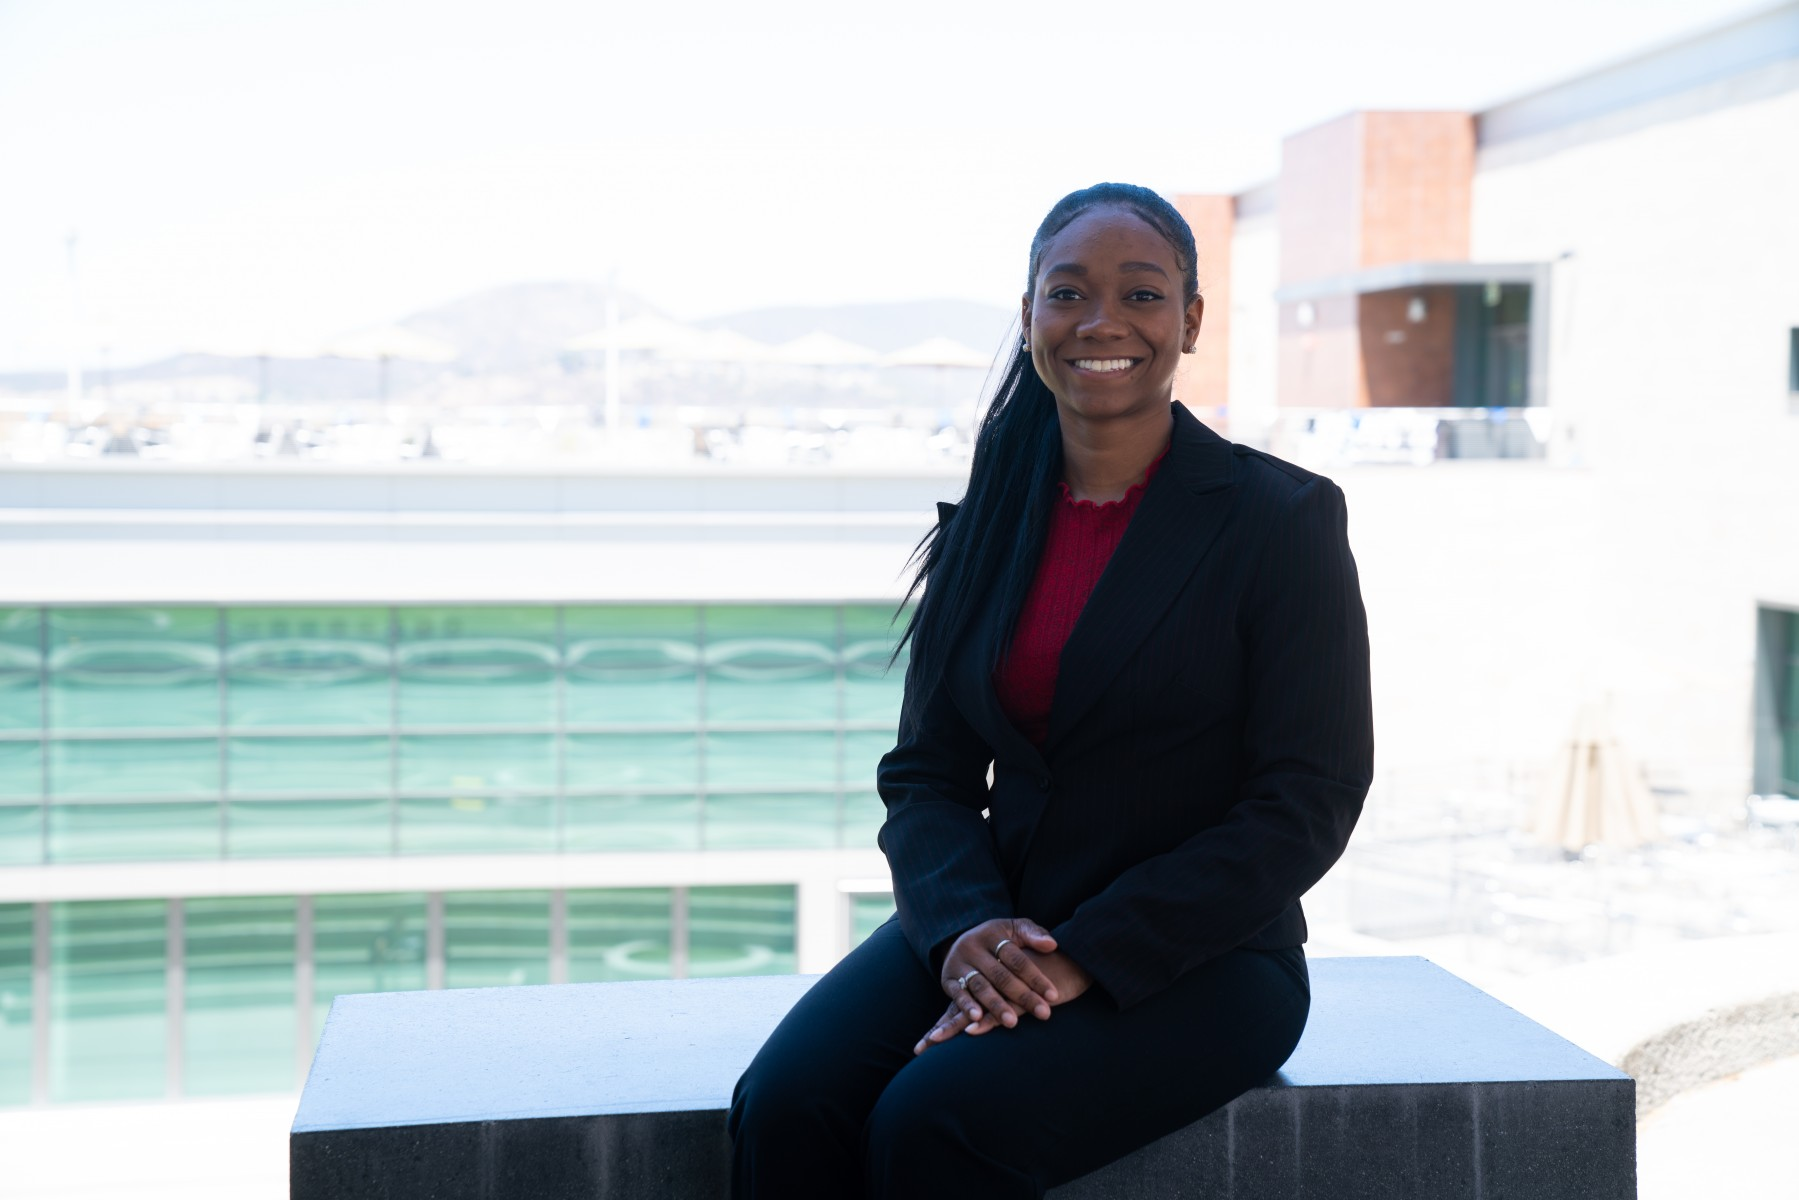 "Holly Hampton has only been in the job for a few months, but she's already amazed by the level of care on campus. ""I have been in awe of the way students' needs – all of their needs – have been addressed here at CSUSM,"" she says. Photo by Chandler Oriente"